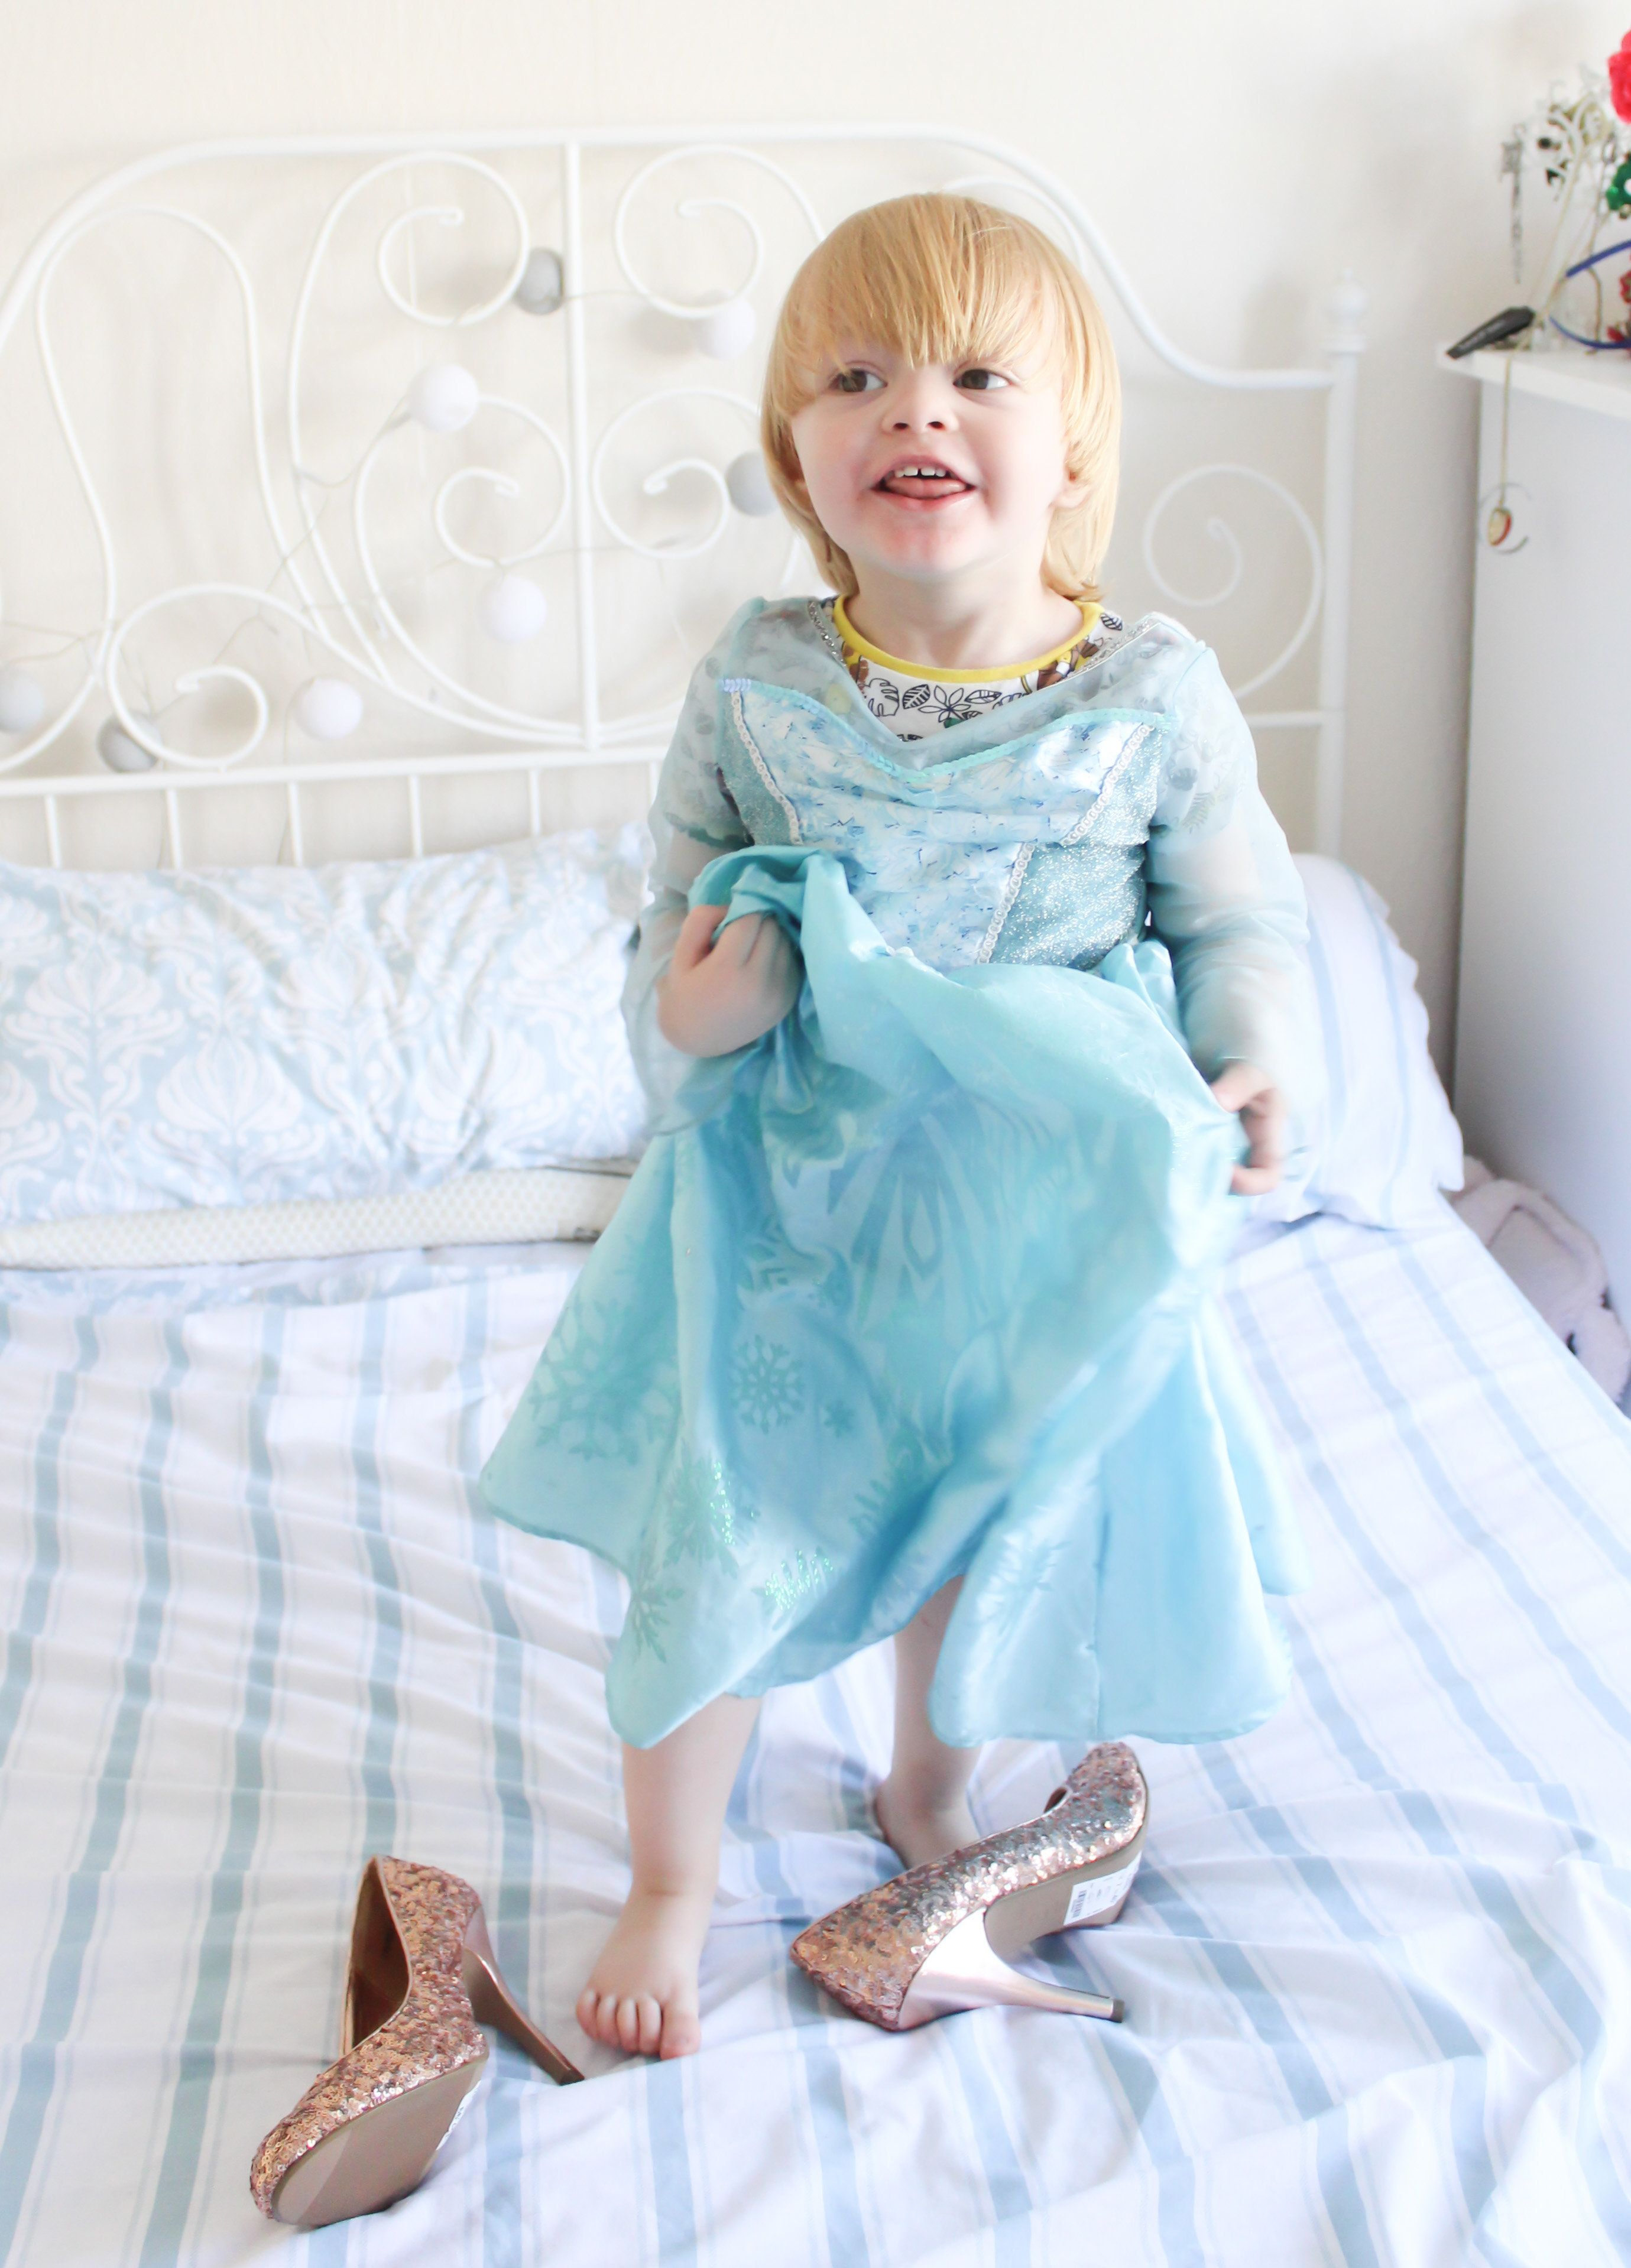 3-Year-Old Boy Can Now Join Disney Princess Activity After Mom Challenges Theme